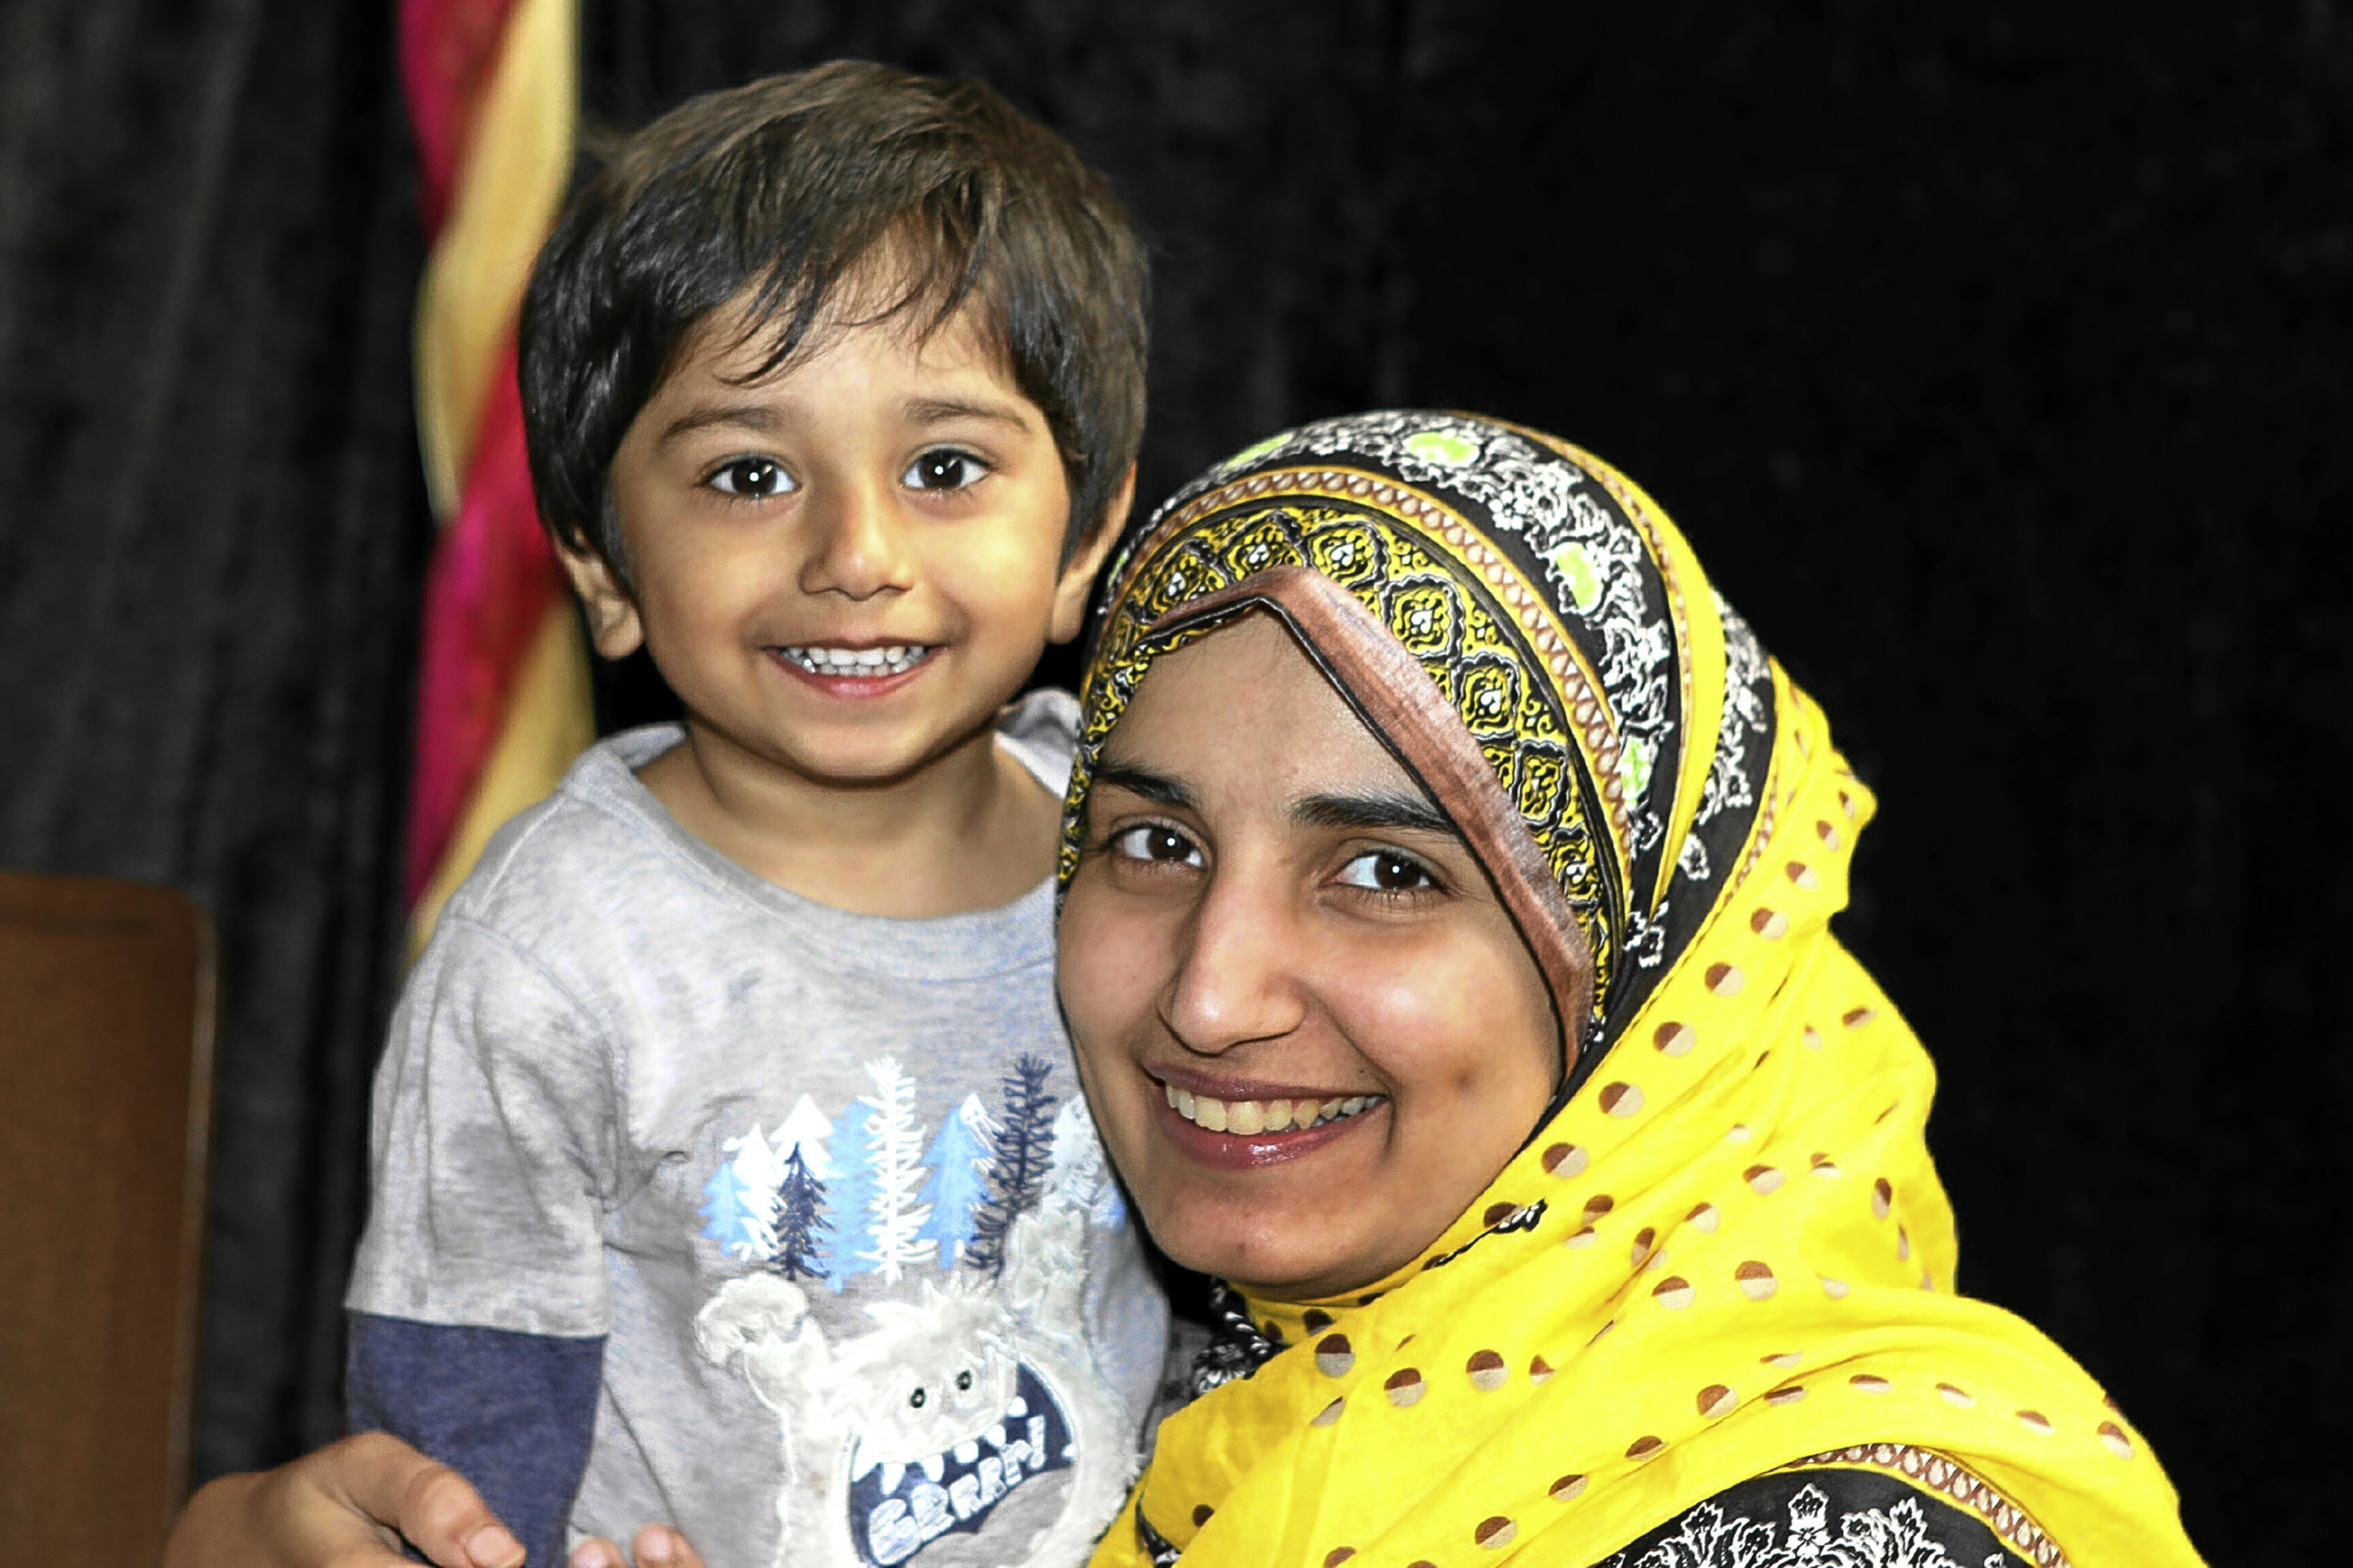 Azra Sohail, pictured with her son Muhammad Zayam, spoke no English when she moved to Scotland.